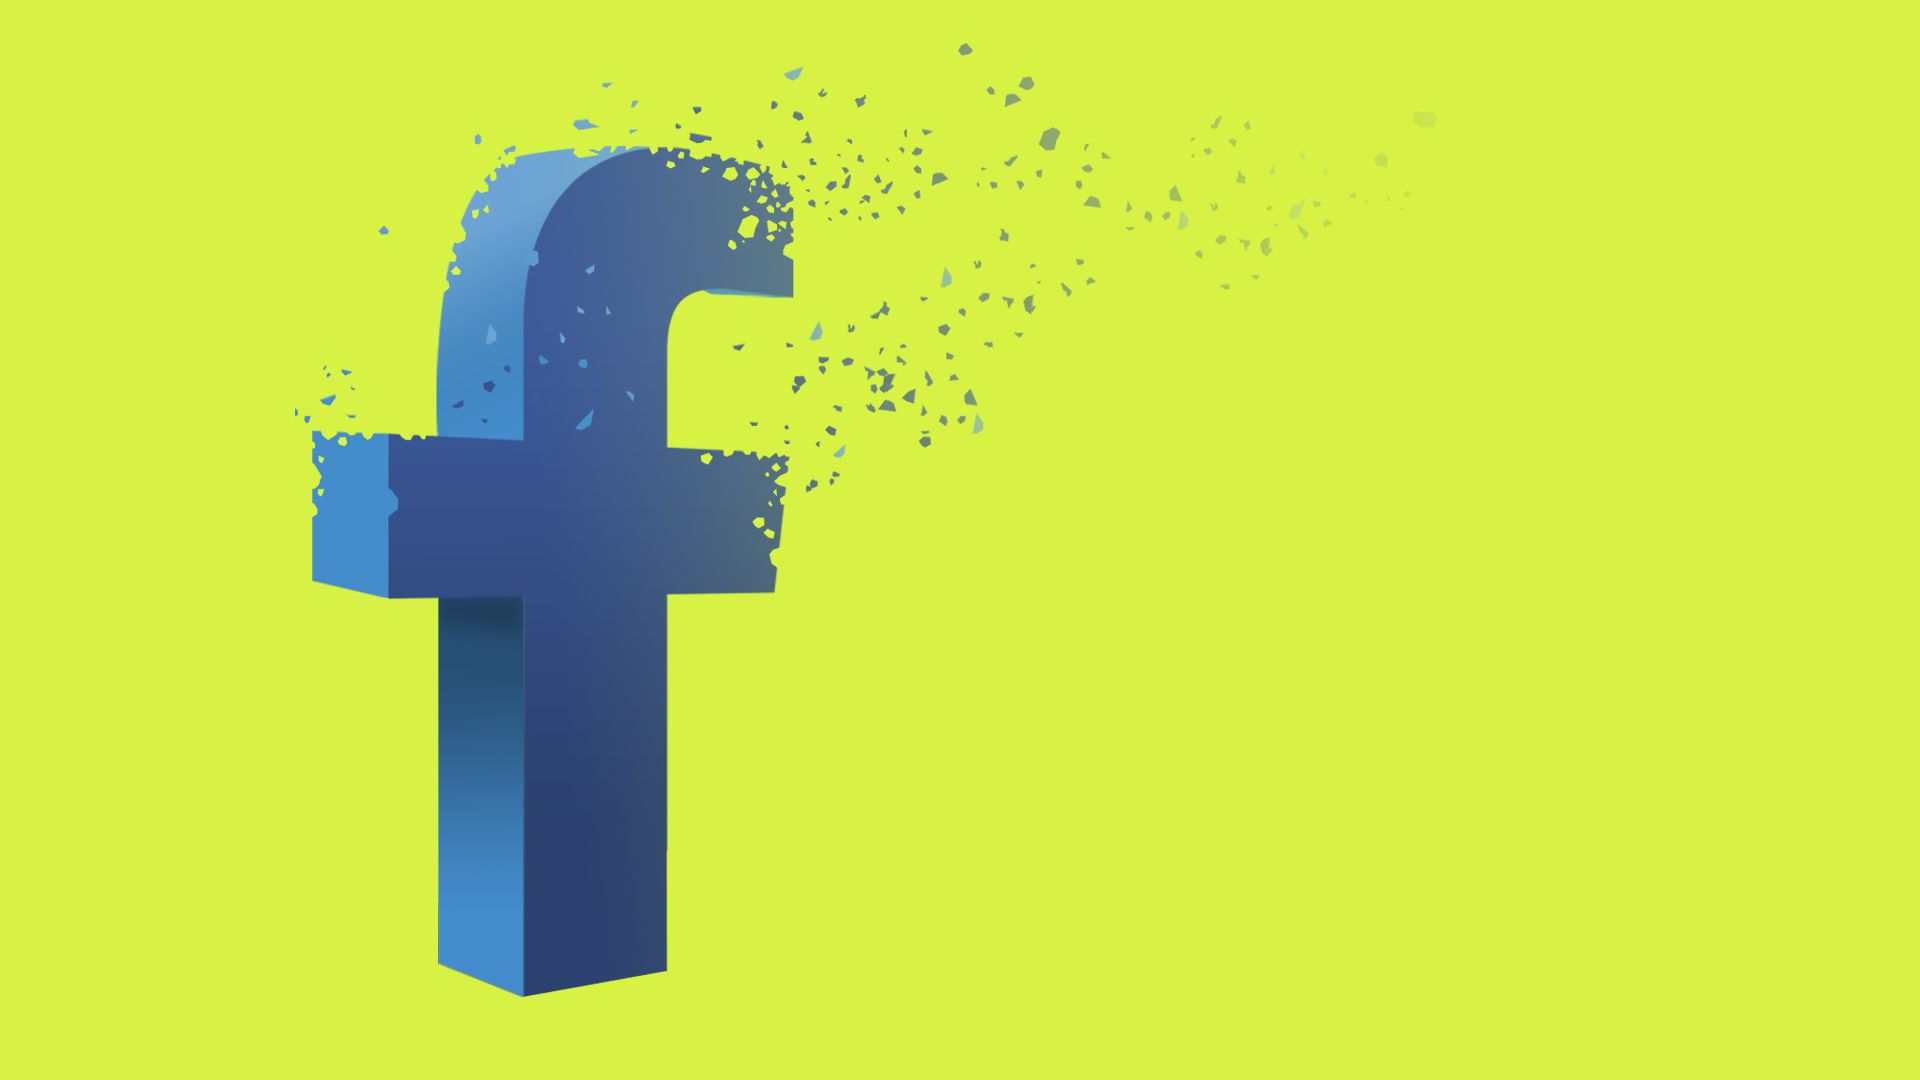 Illustration of Facebook logo dissolving